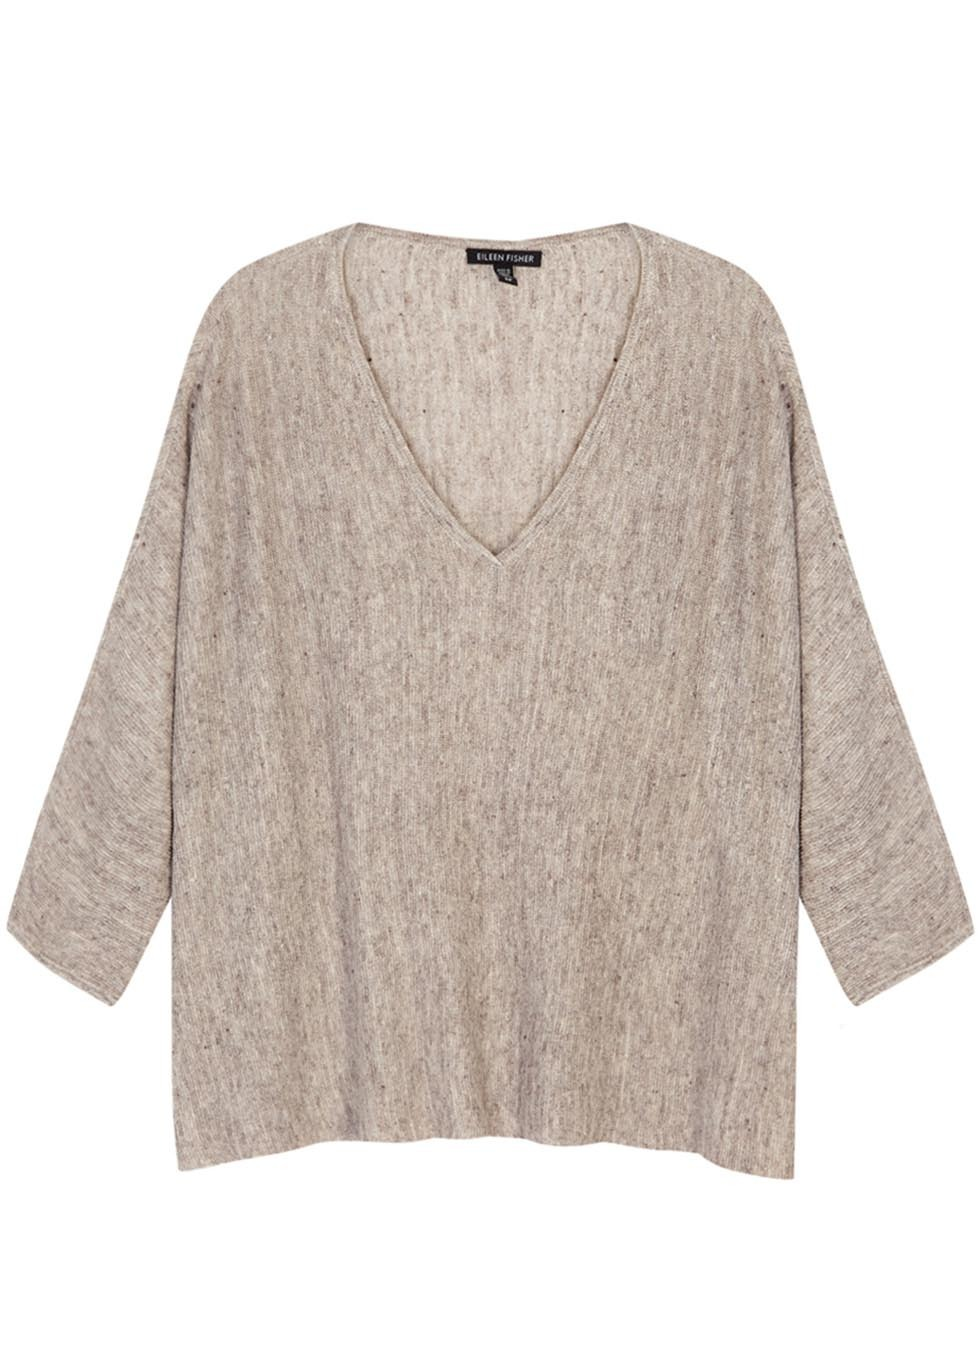 Taupe Slubbed Linen Top - neckline: low v-neck; sleeve style: dolman/batwing; style: t-shirt; predominant colour: taupe; occasions: casual; length: standard; fibres: linen - 100%; fit: loose; sleeve length: 3/4 length; pattern type: fabric; pattern size: light/subtle; texture group: jersey - stretchy/drapey; pattern: marl; season: s/s 2016; wardrobe: basic